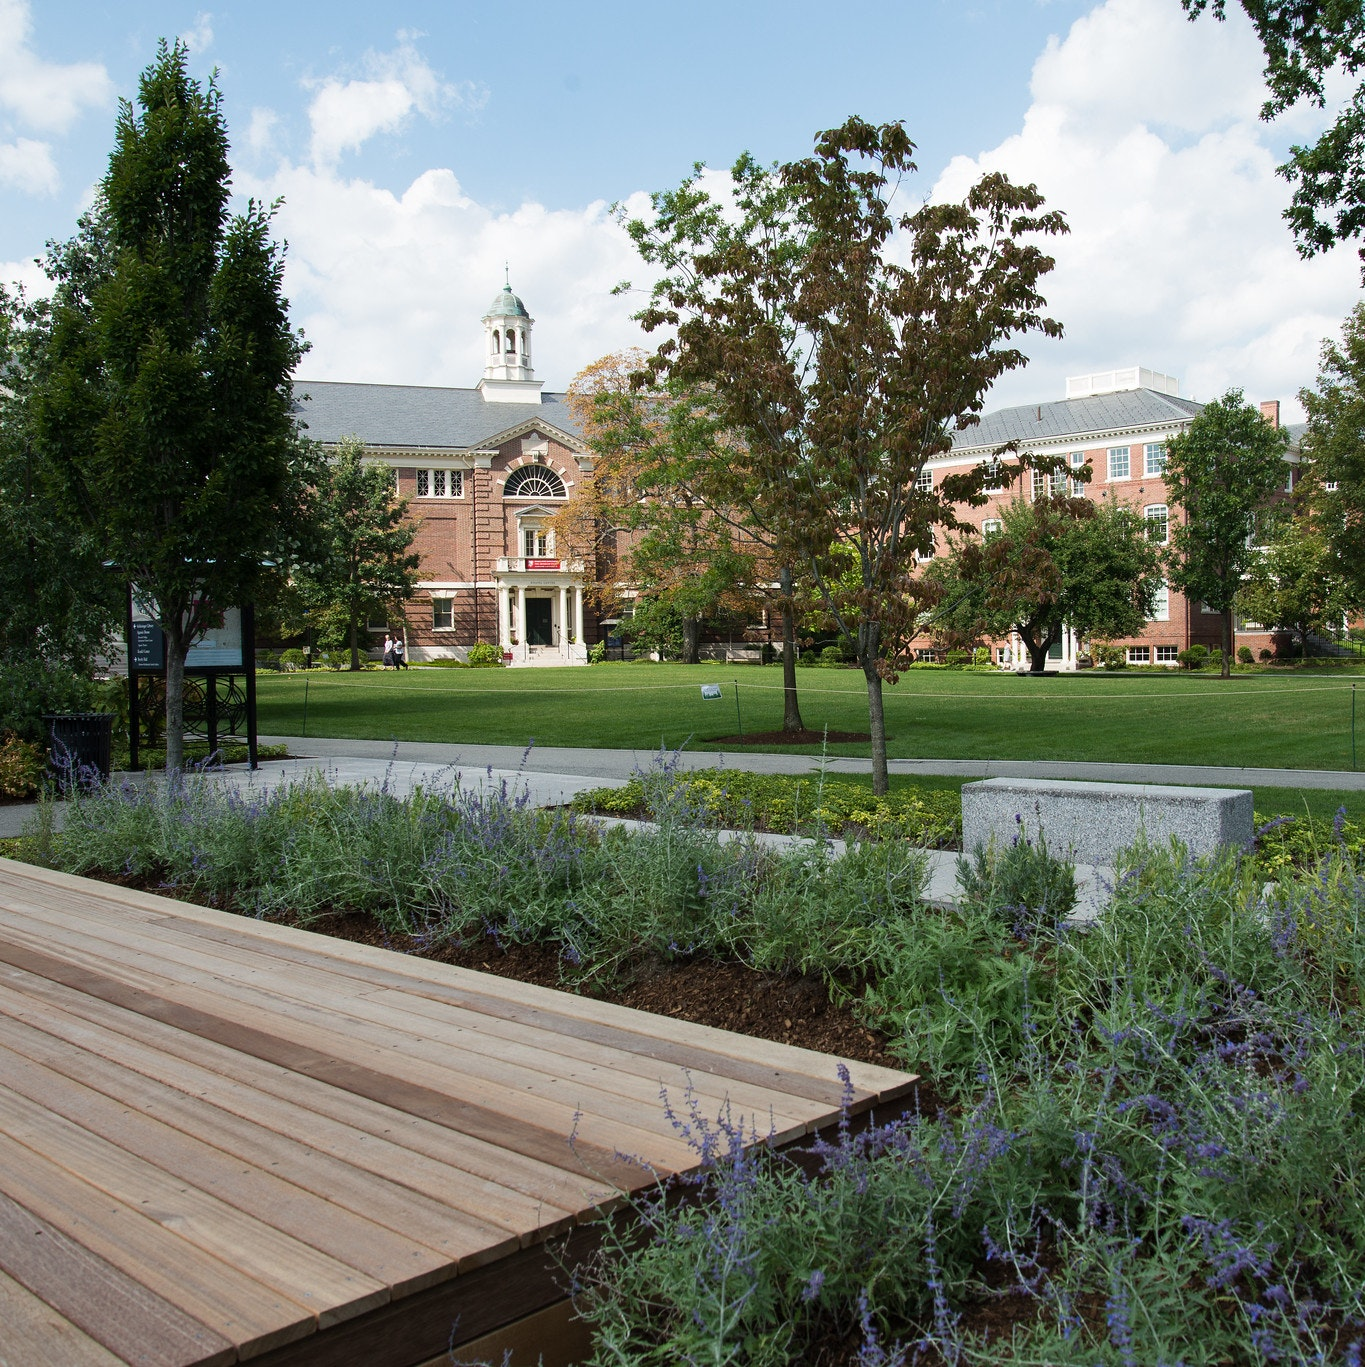 Wooden, platform like stage area, with gray pathways and brick buildings in the distance. Platform is surrounding by flowers and trees along the courtyard area. View is from the platform.